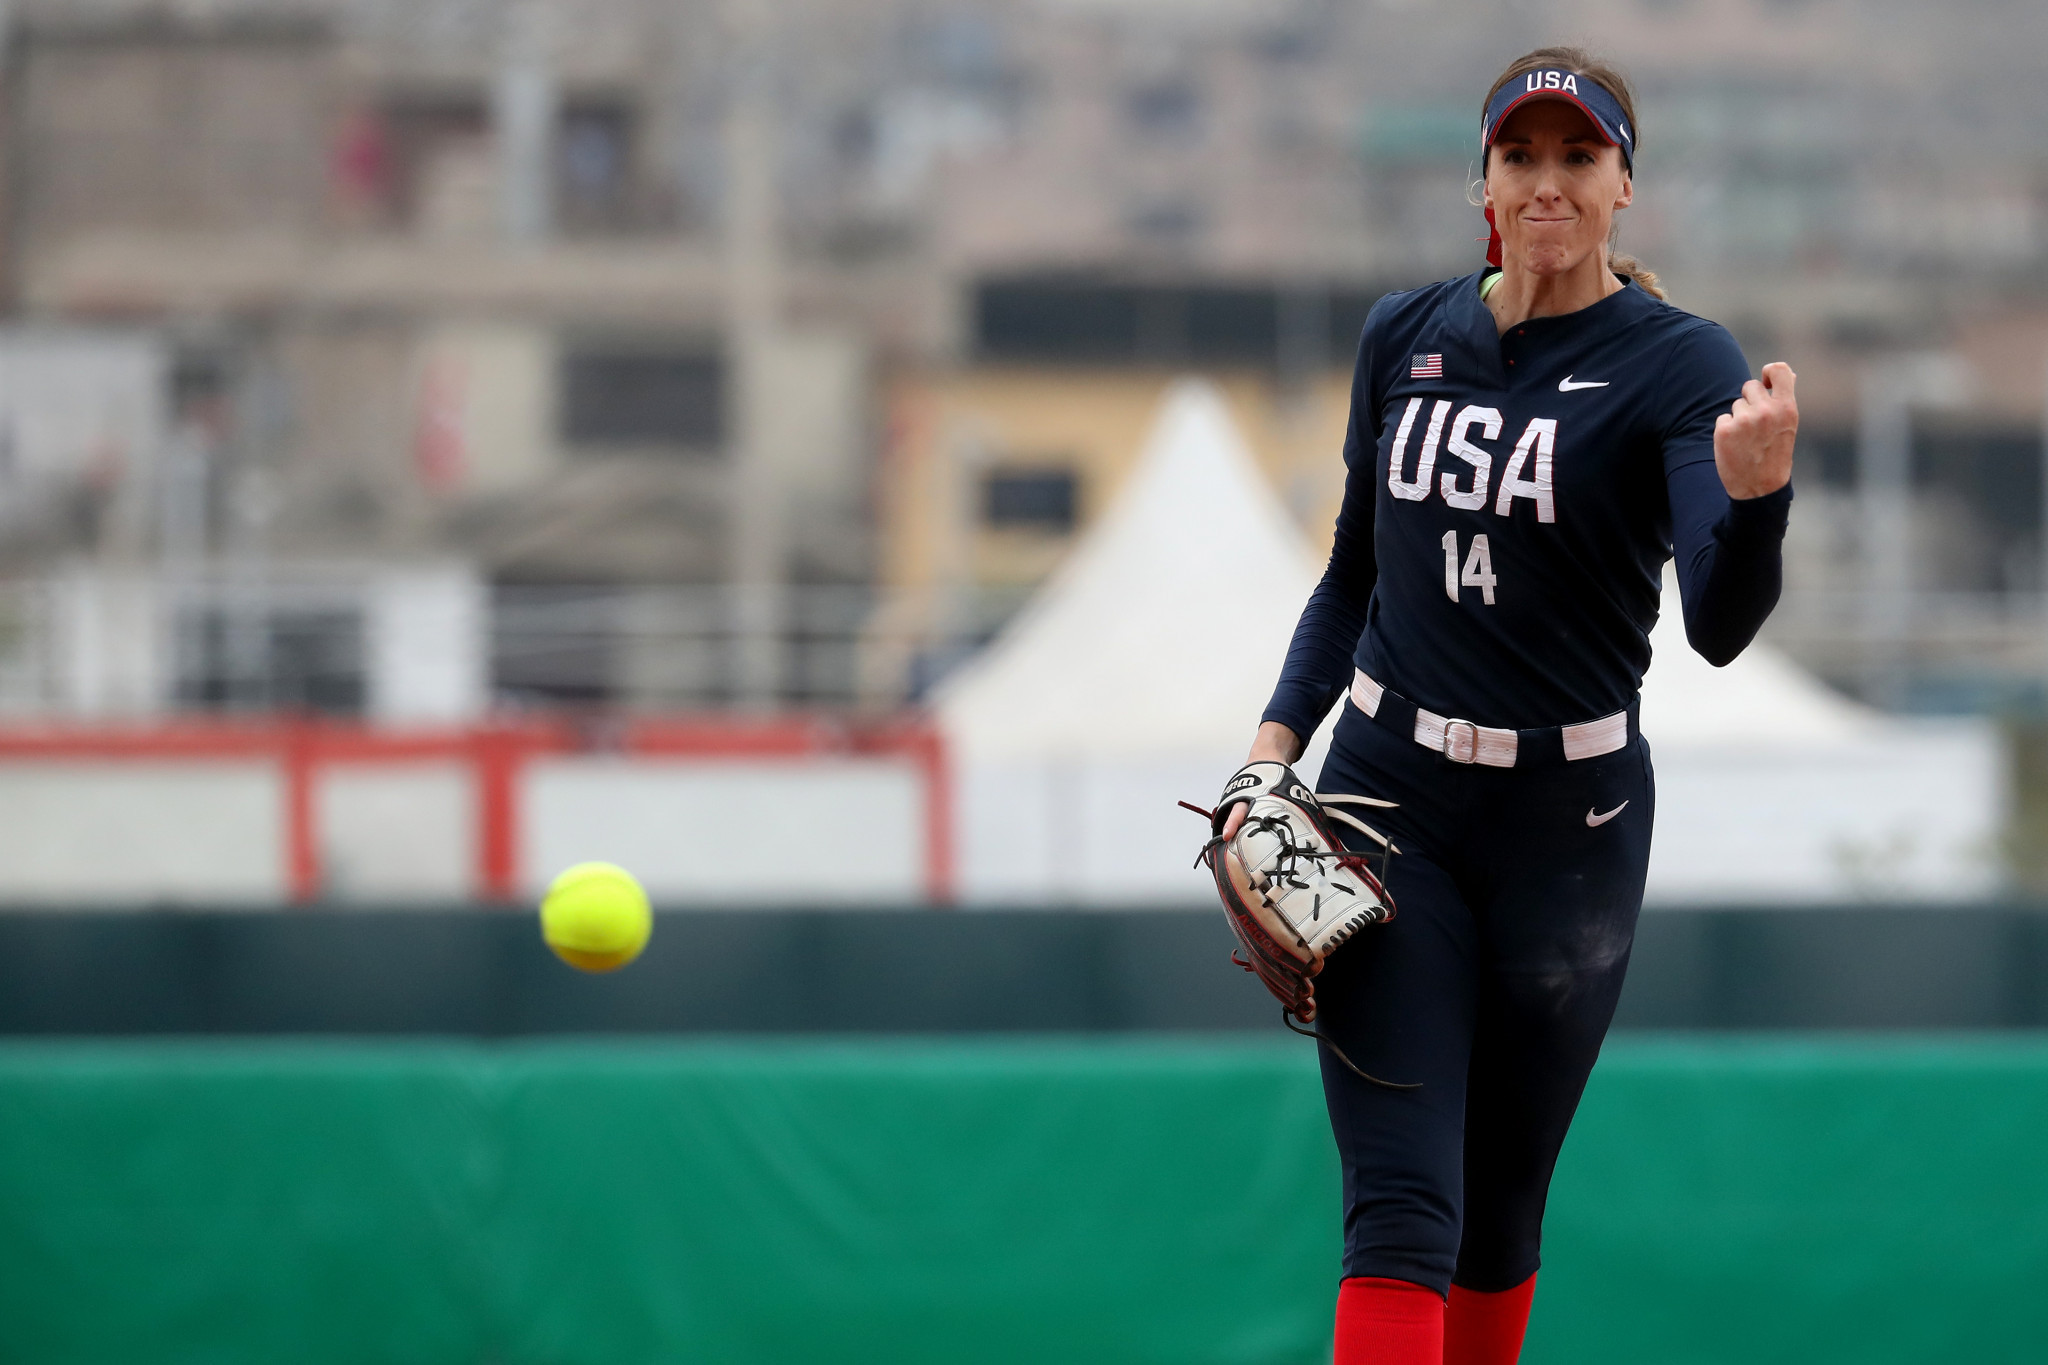 USA Softball hopes the programme will help identify athletes for the national team ©Getty Images